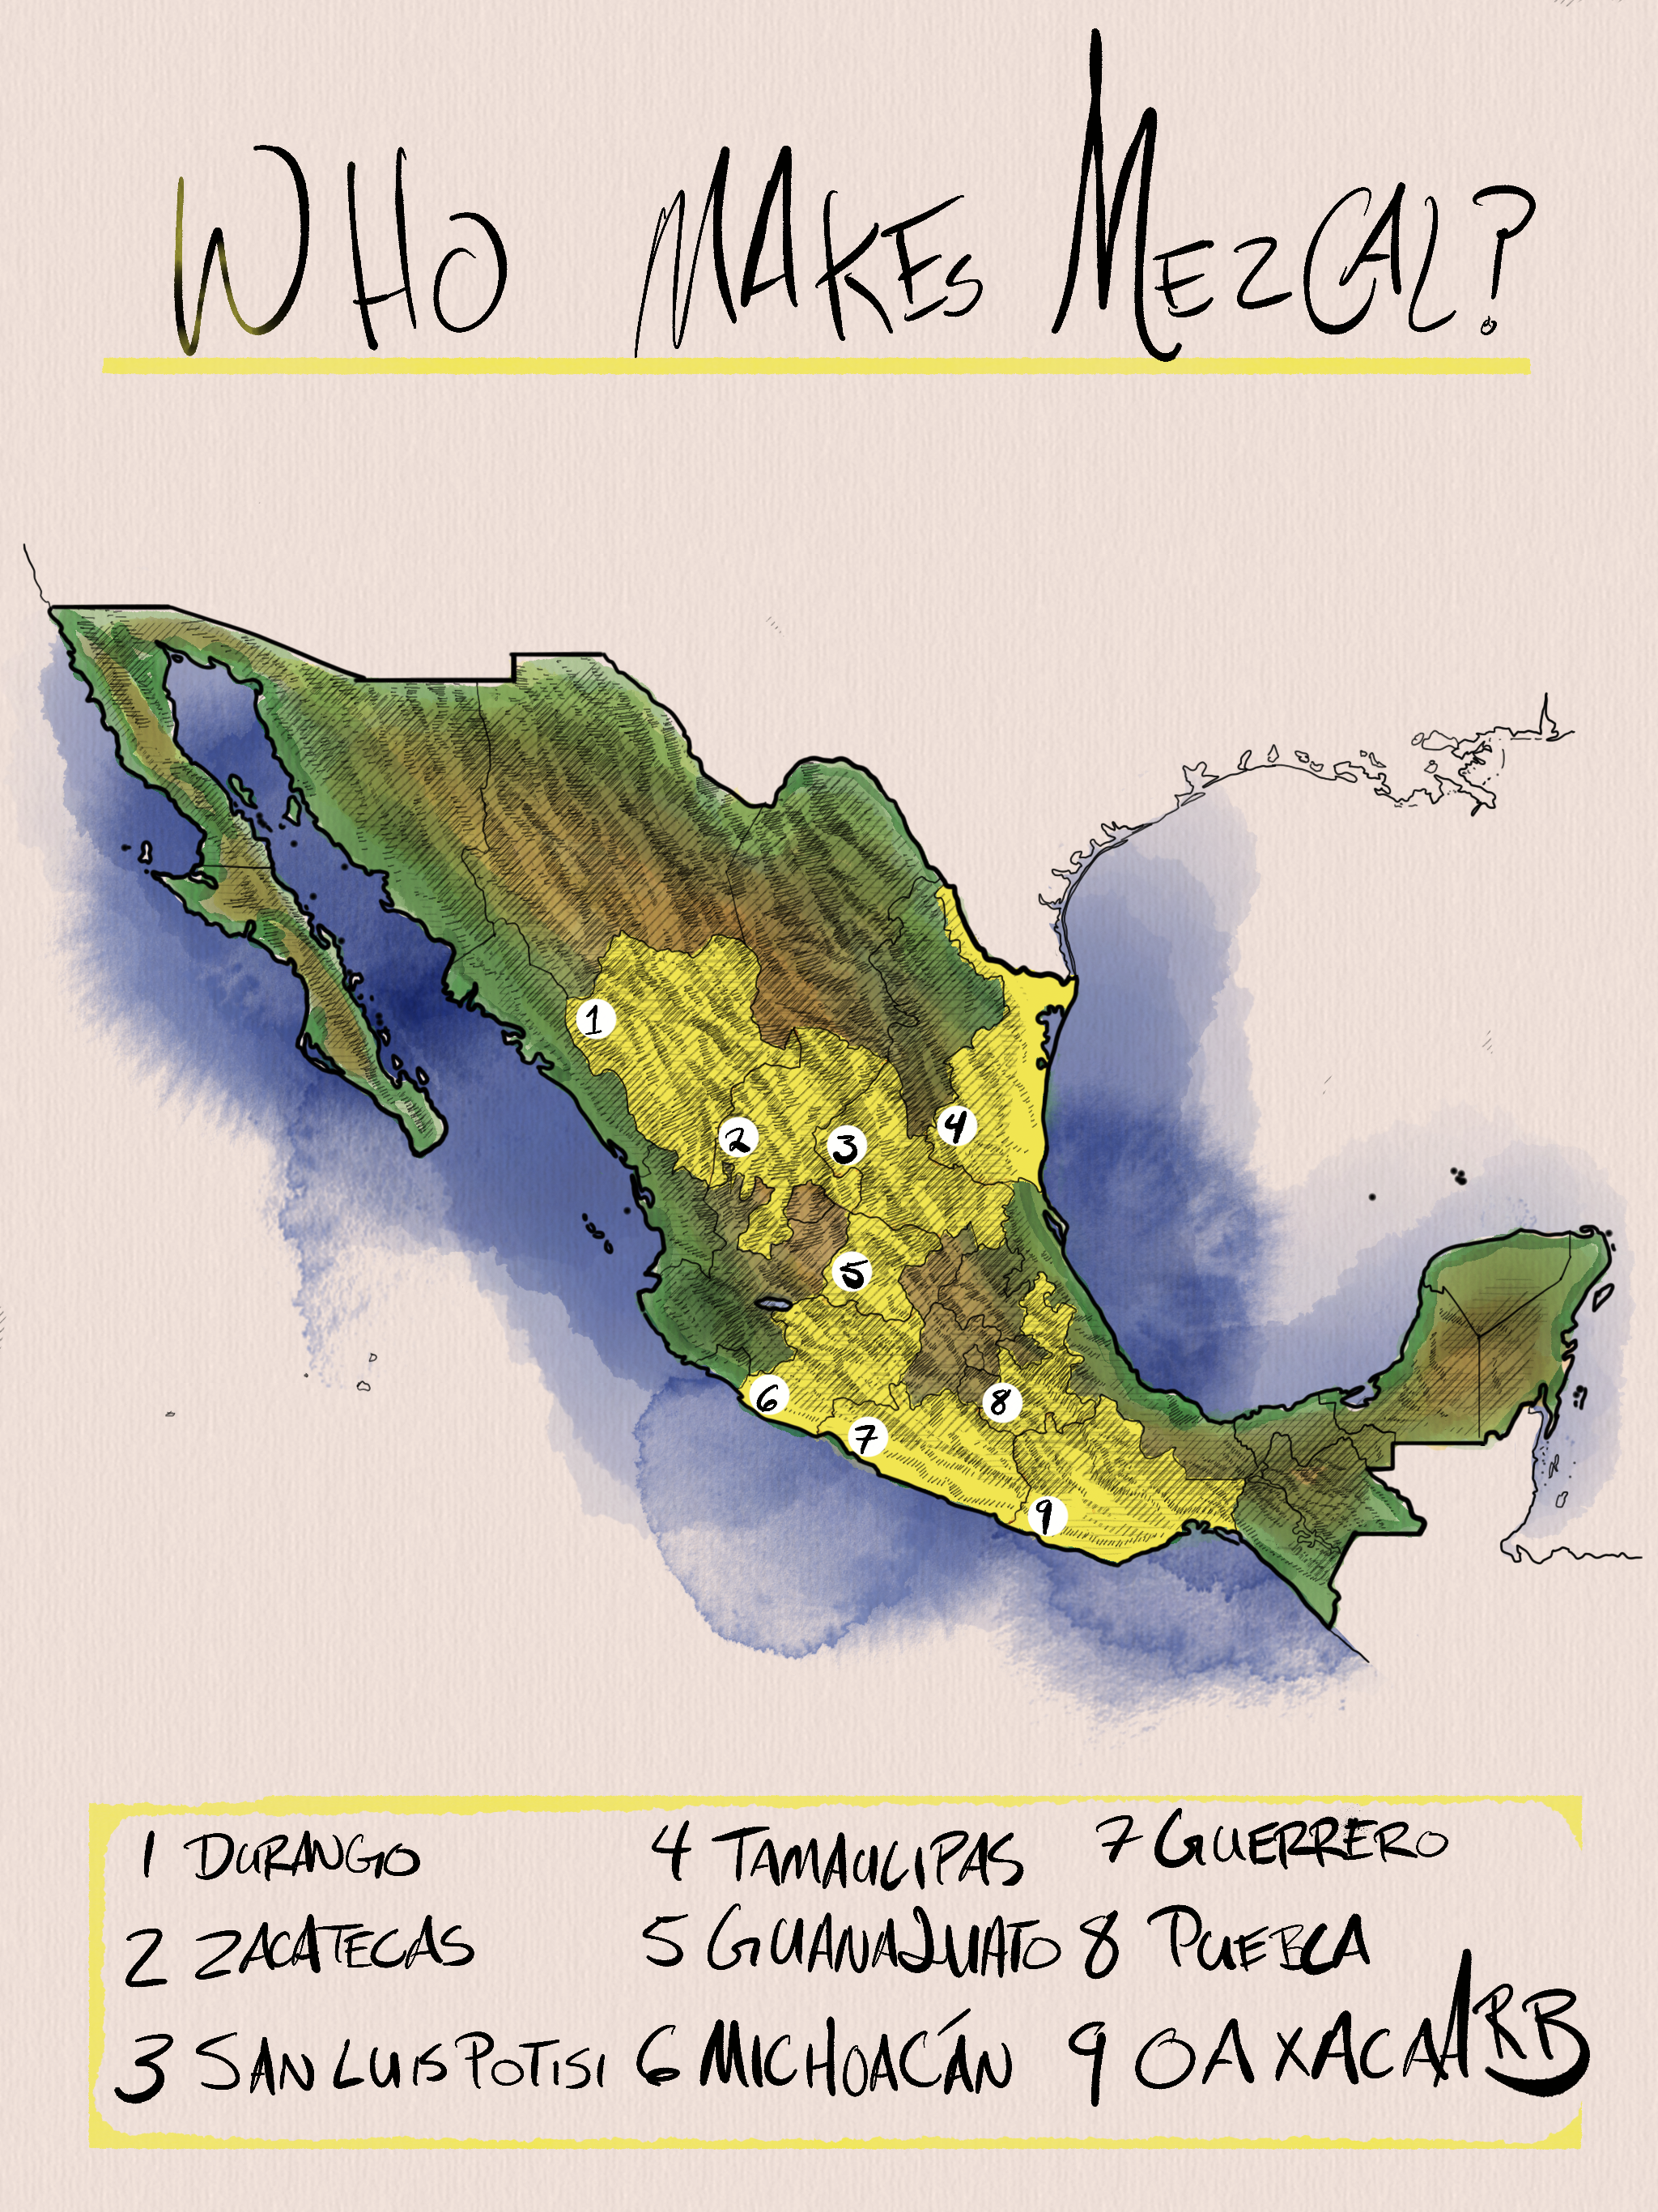 The nine Mexican States that make Mezcal.